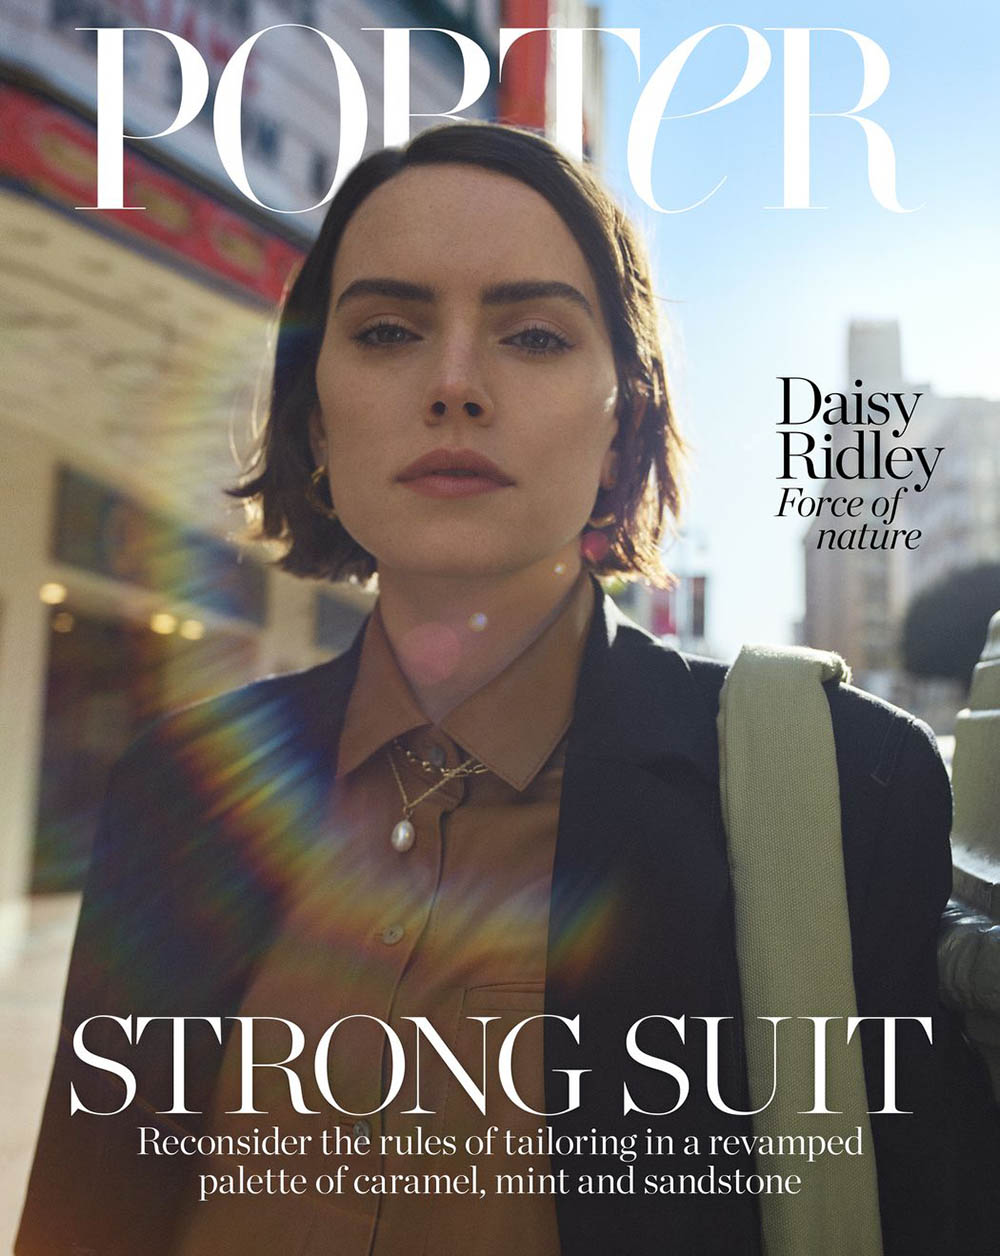 Daisy Ridley covers Porter Magazine December 13th, 2019 by Matthew Sprout